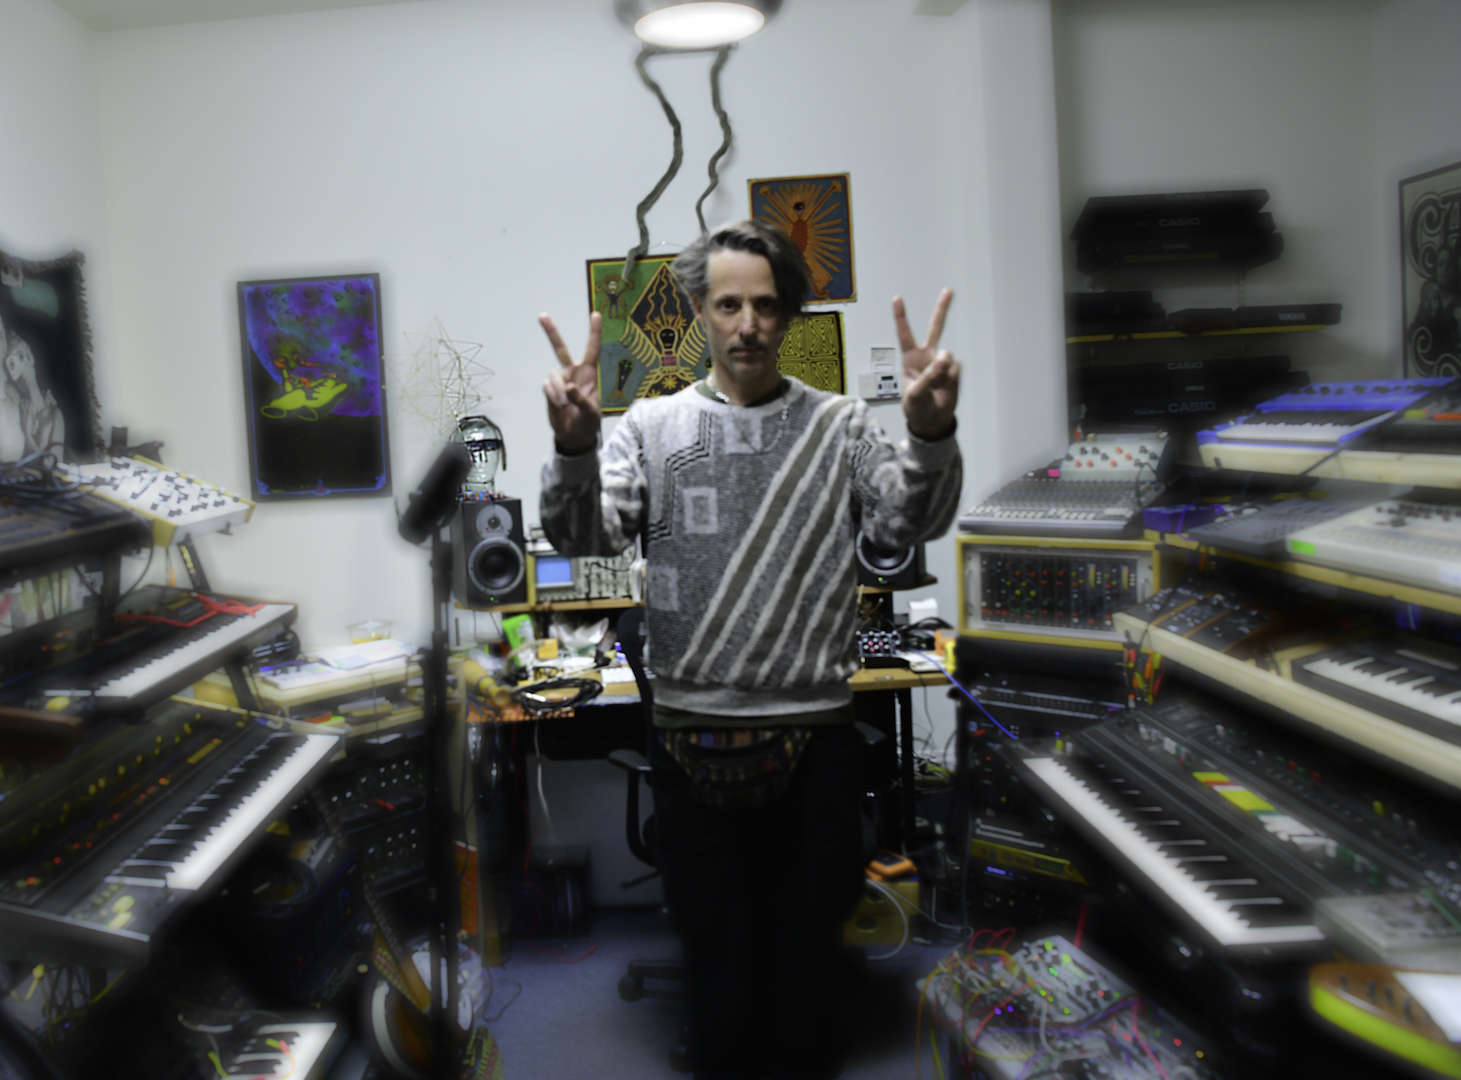 Eddie Ruscha in his Los Angeles art and music studio. Photo: Cameron Murray